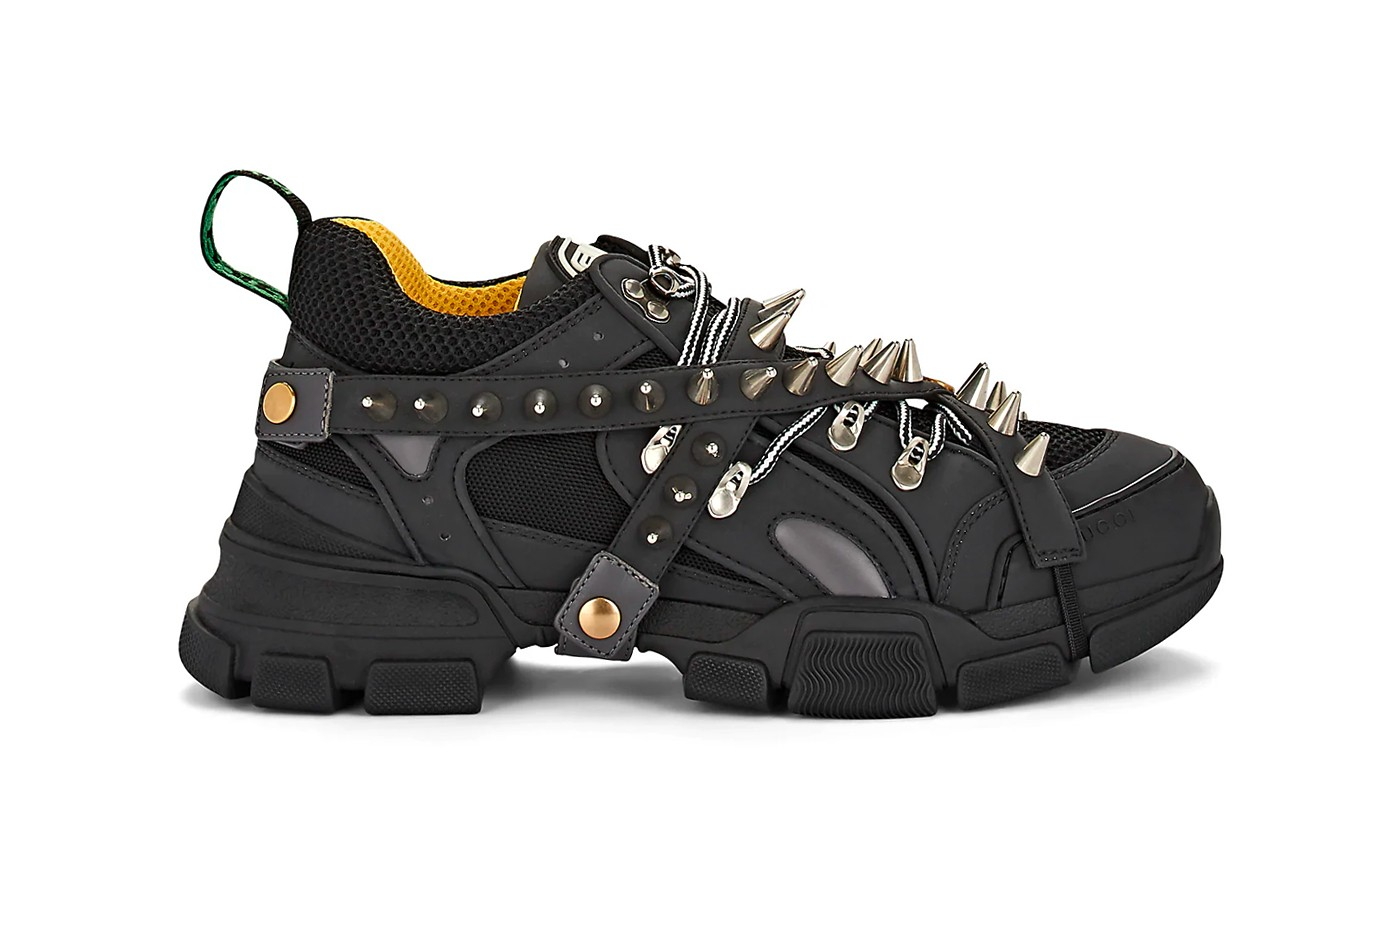 Gucci Flashtrek Spiked Canvas Sneakers